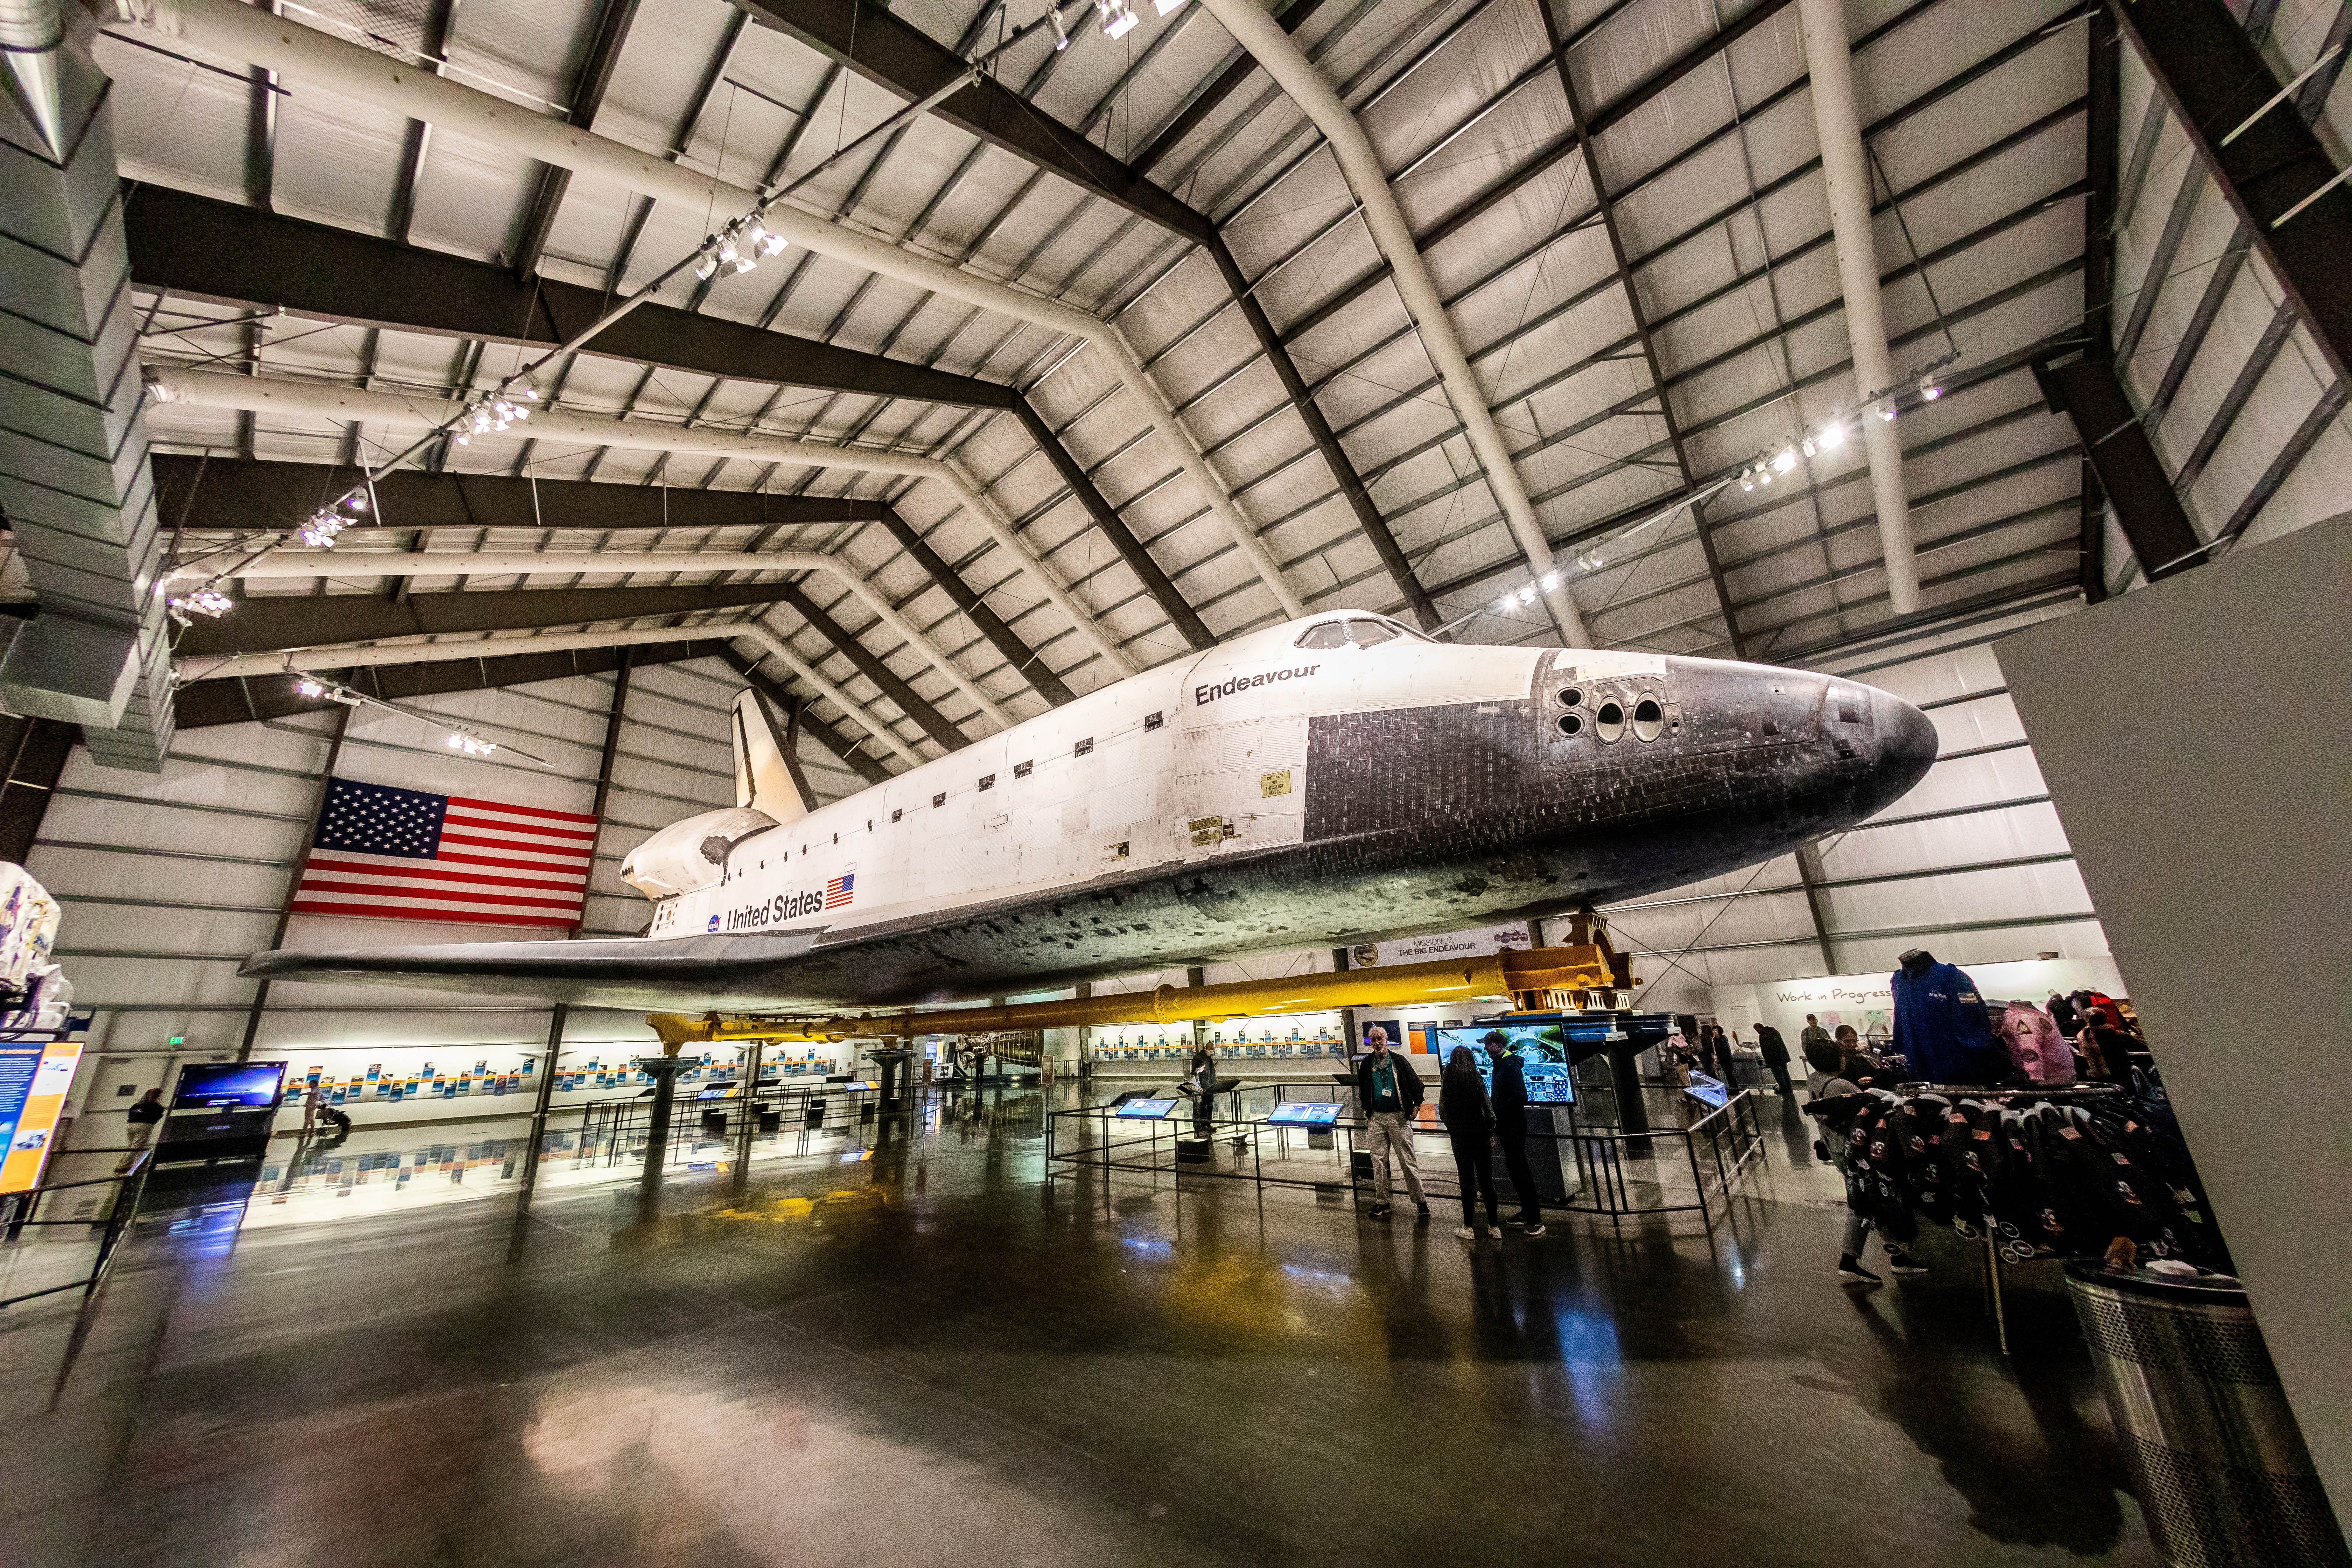 Best Air and Space Museums and Attractions in LA